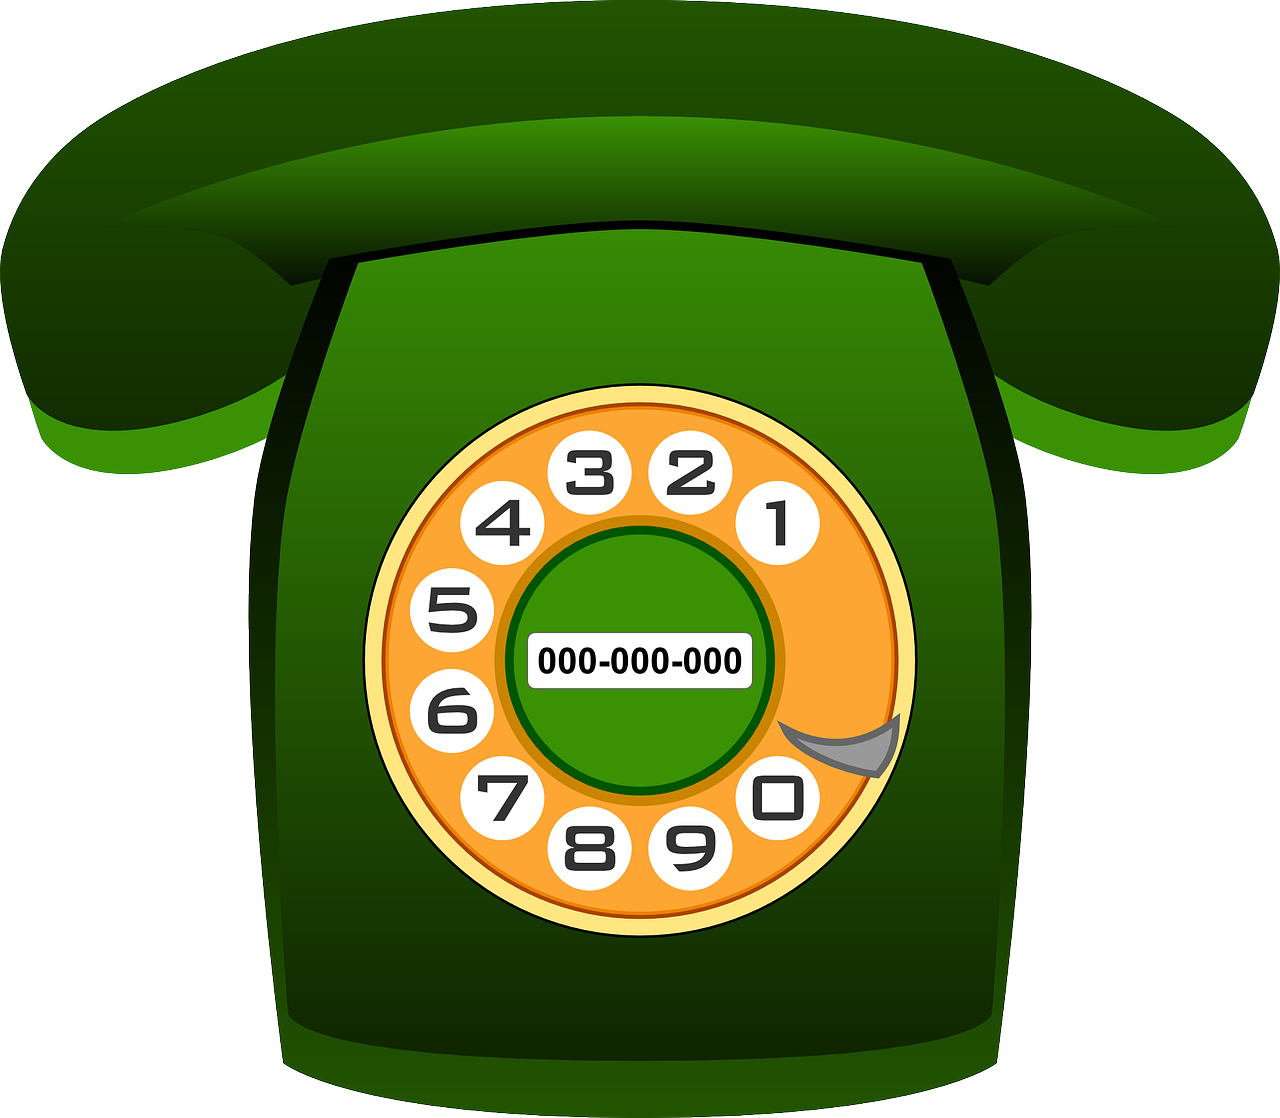 Old phone png image. Telephone clipart telephone communication